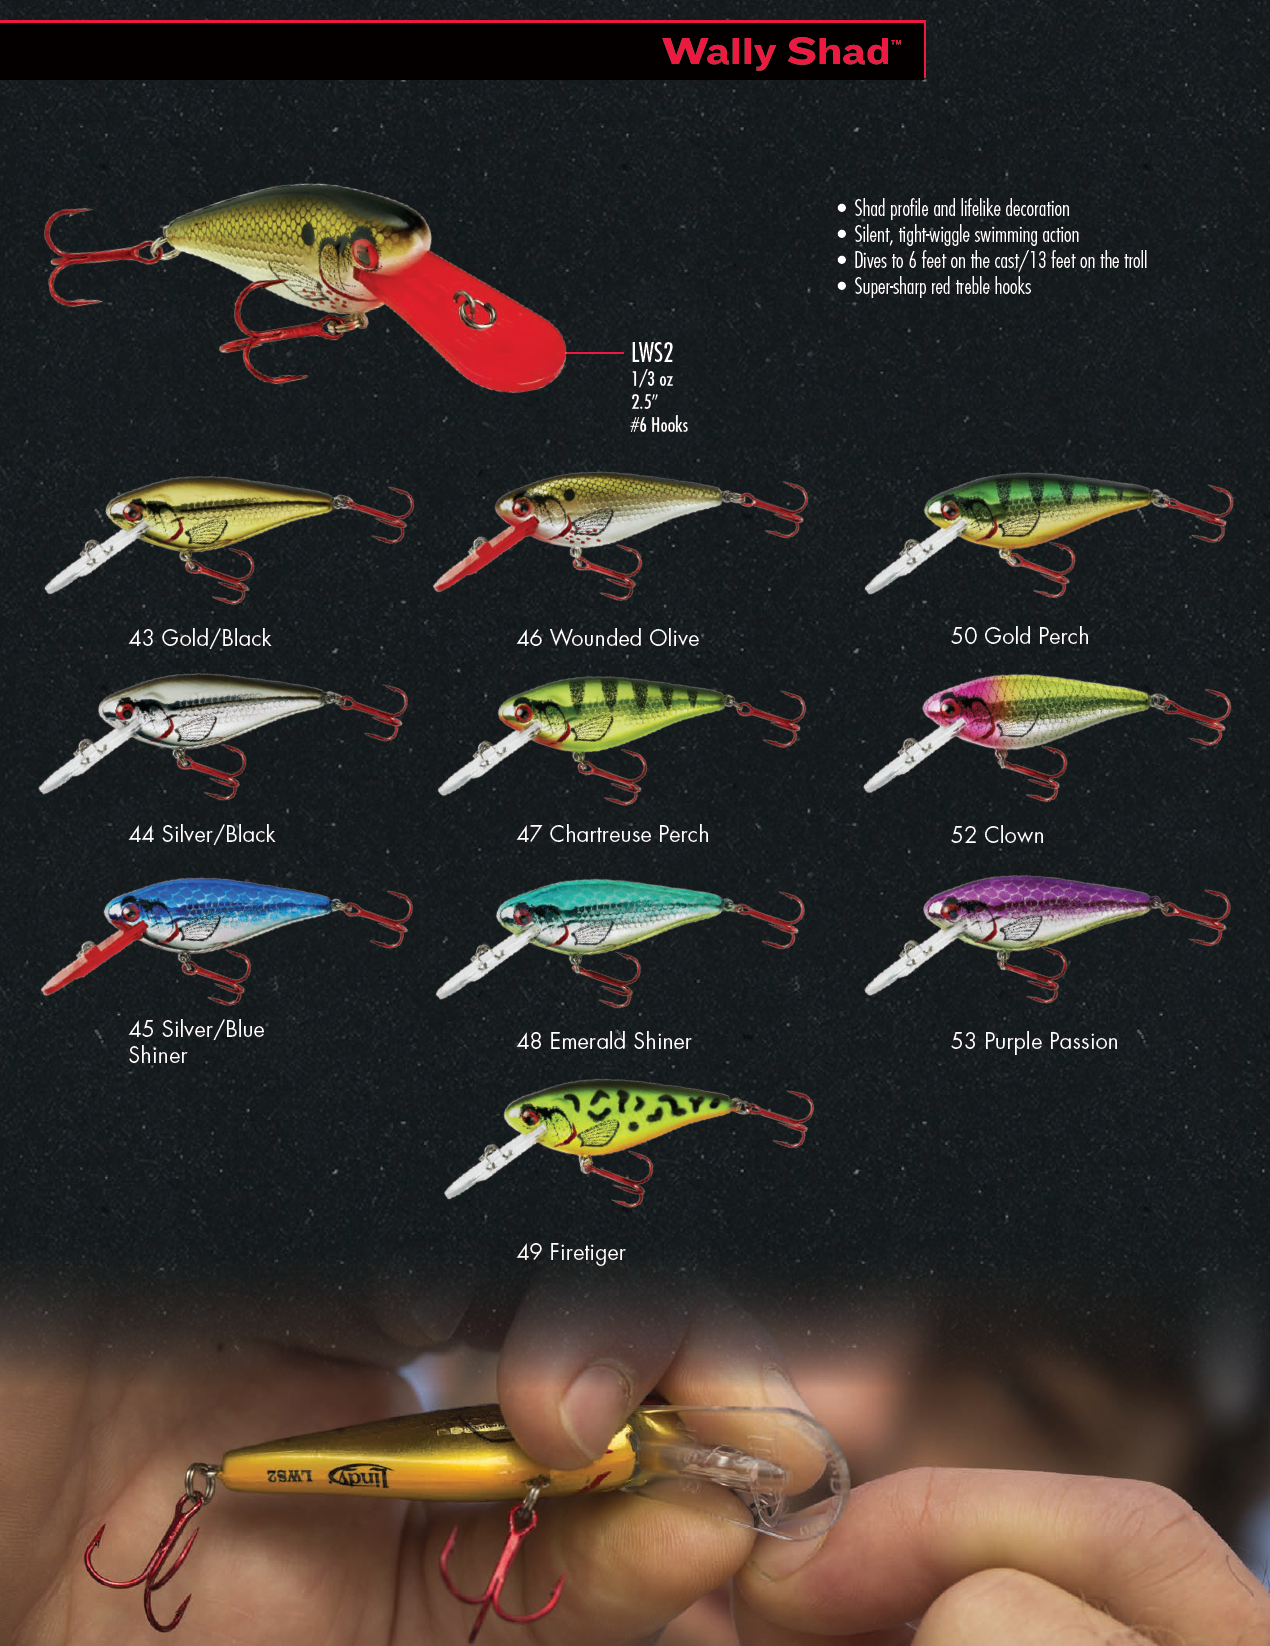 Lindy wally shad 2018 color chart fishing lure color charts and lindy wally shad 2018 color chart 2018 colorfishing lurescolor nvjuhfo Gallery